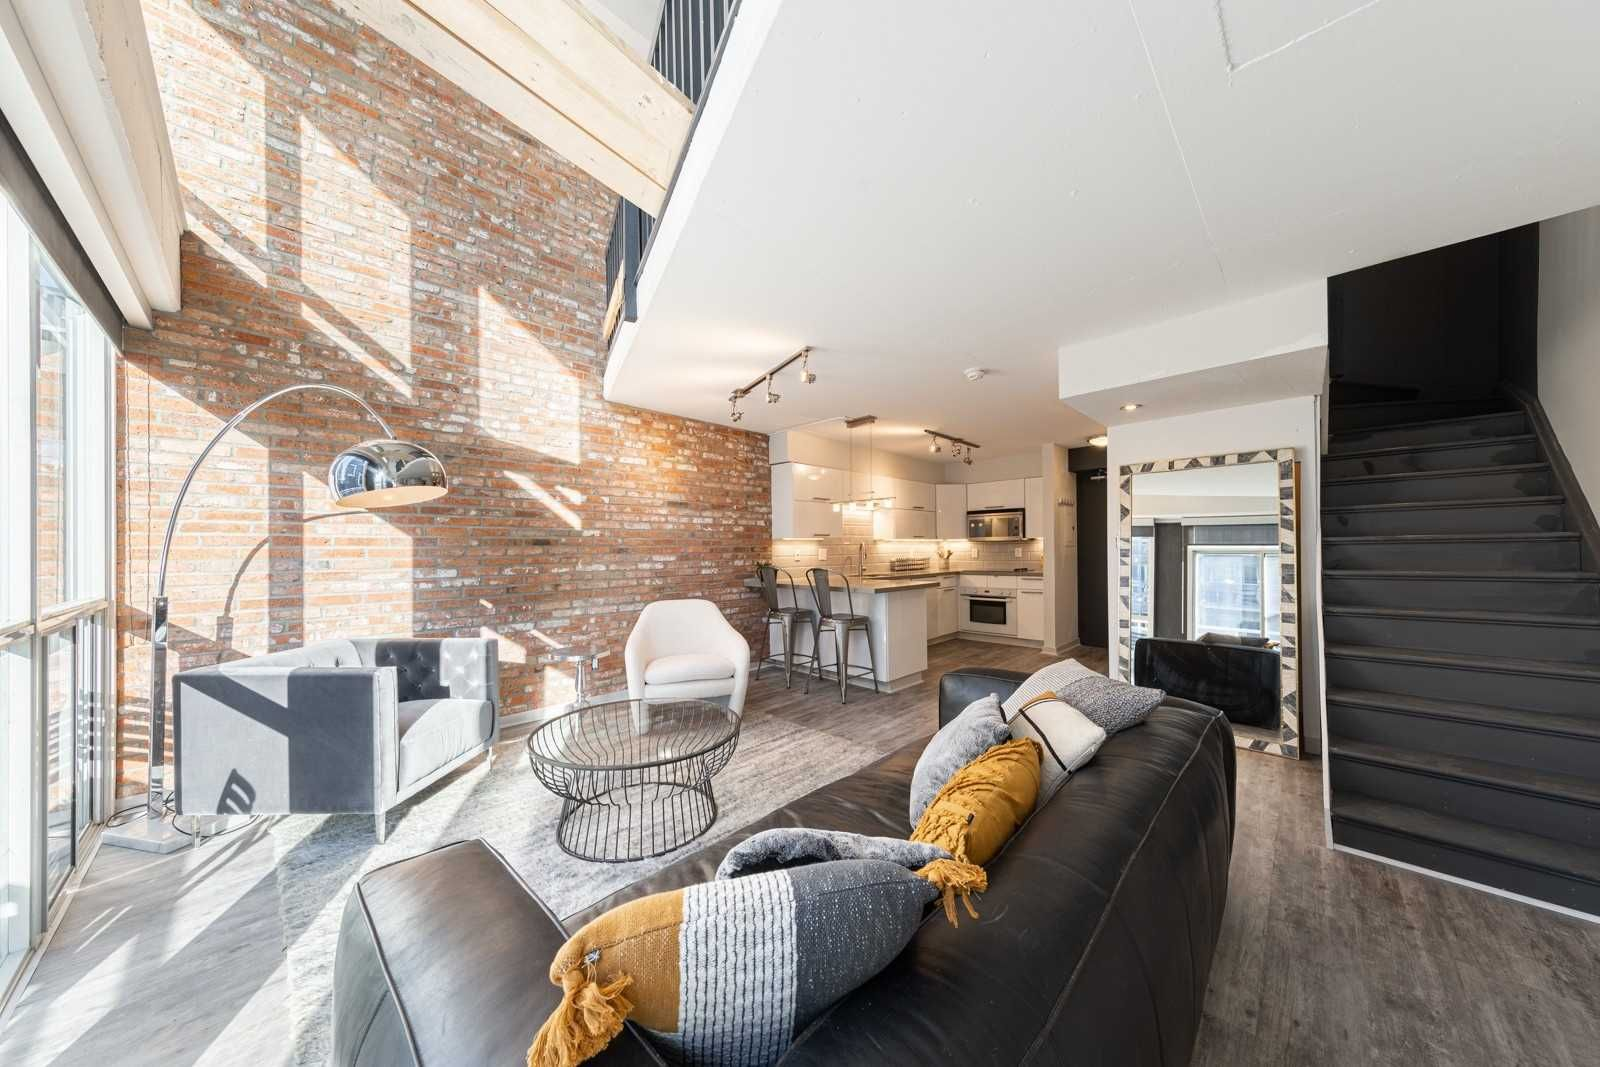 1029 King St W, unit 615 for sale in King West - image #1